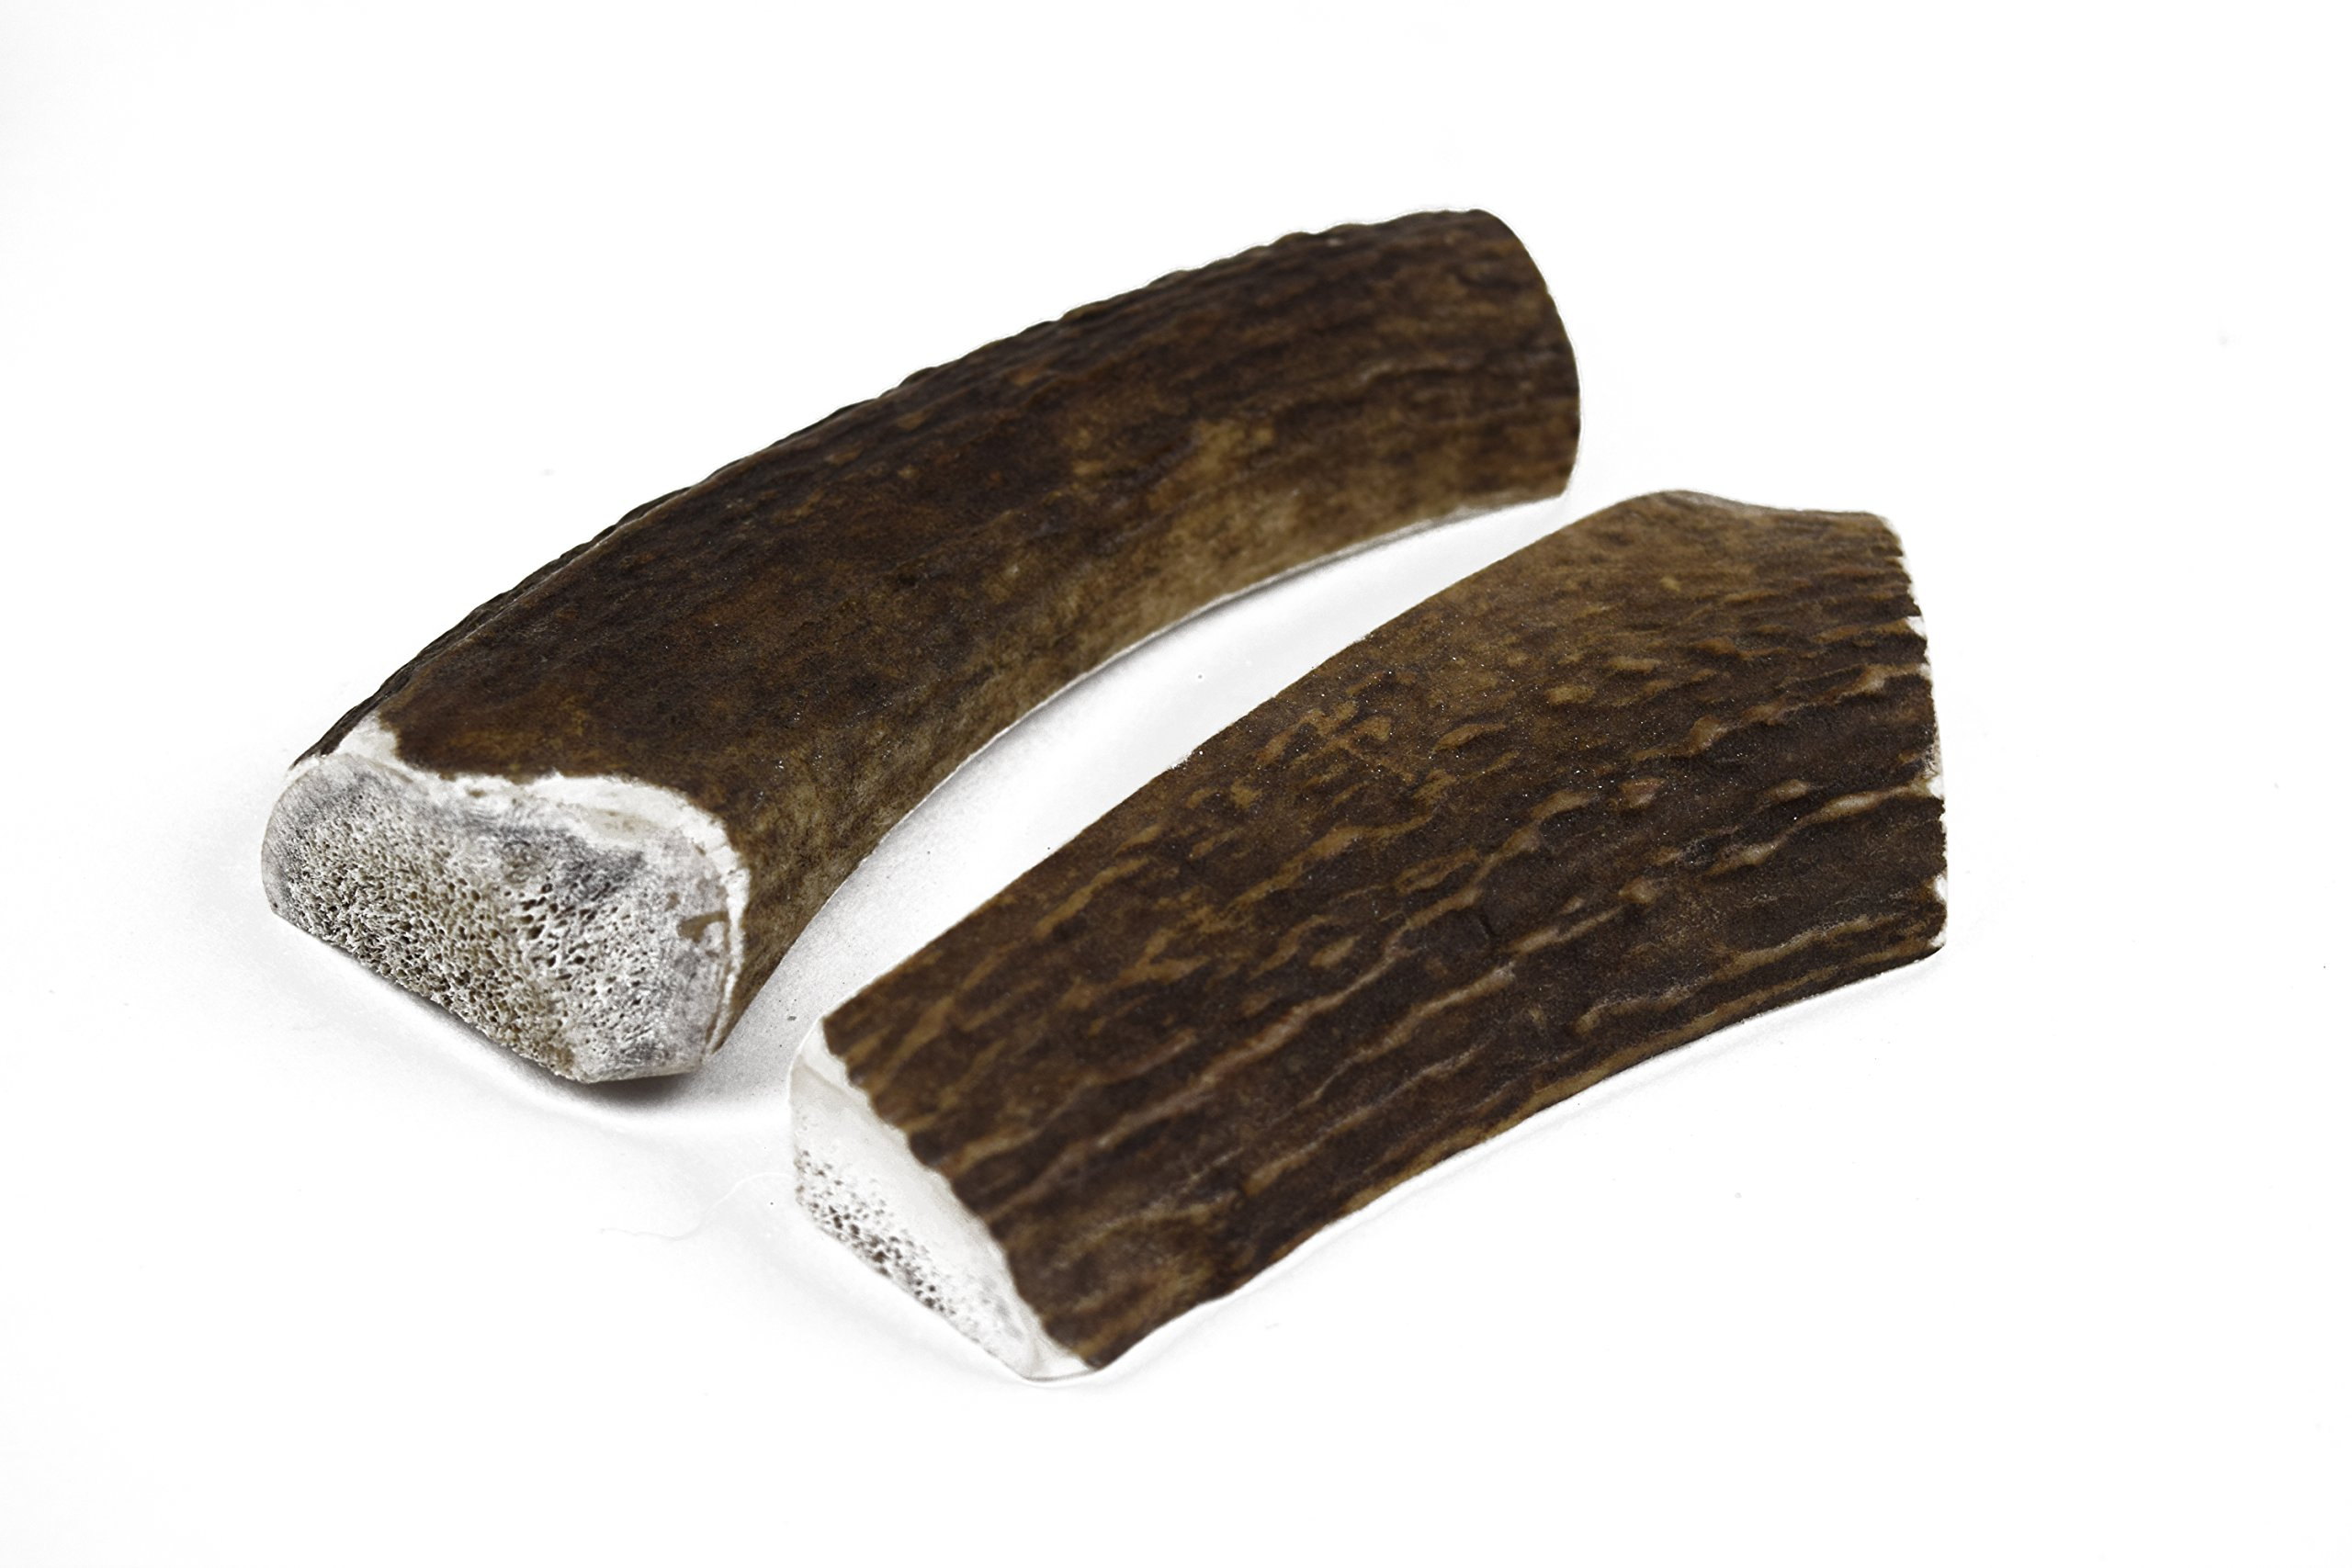 JimHodgesDogTraining Brand - Grade A Premium Quality Elk Antler Dog Chews - Small Split 2 Pack - Natural Alternative to Chew Toys, Bully Sticks, Bones, Rawhides, Himalayan, Jerky Treats - Made in USA by JimHodgesDogTraining - Grade A Antler Dog Chews (Image #4)